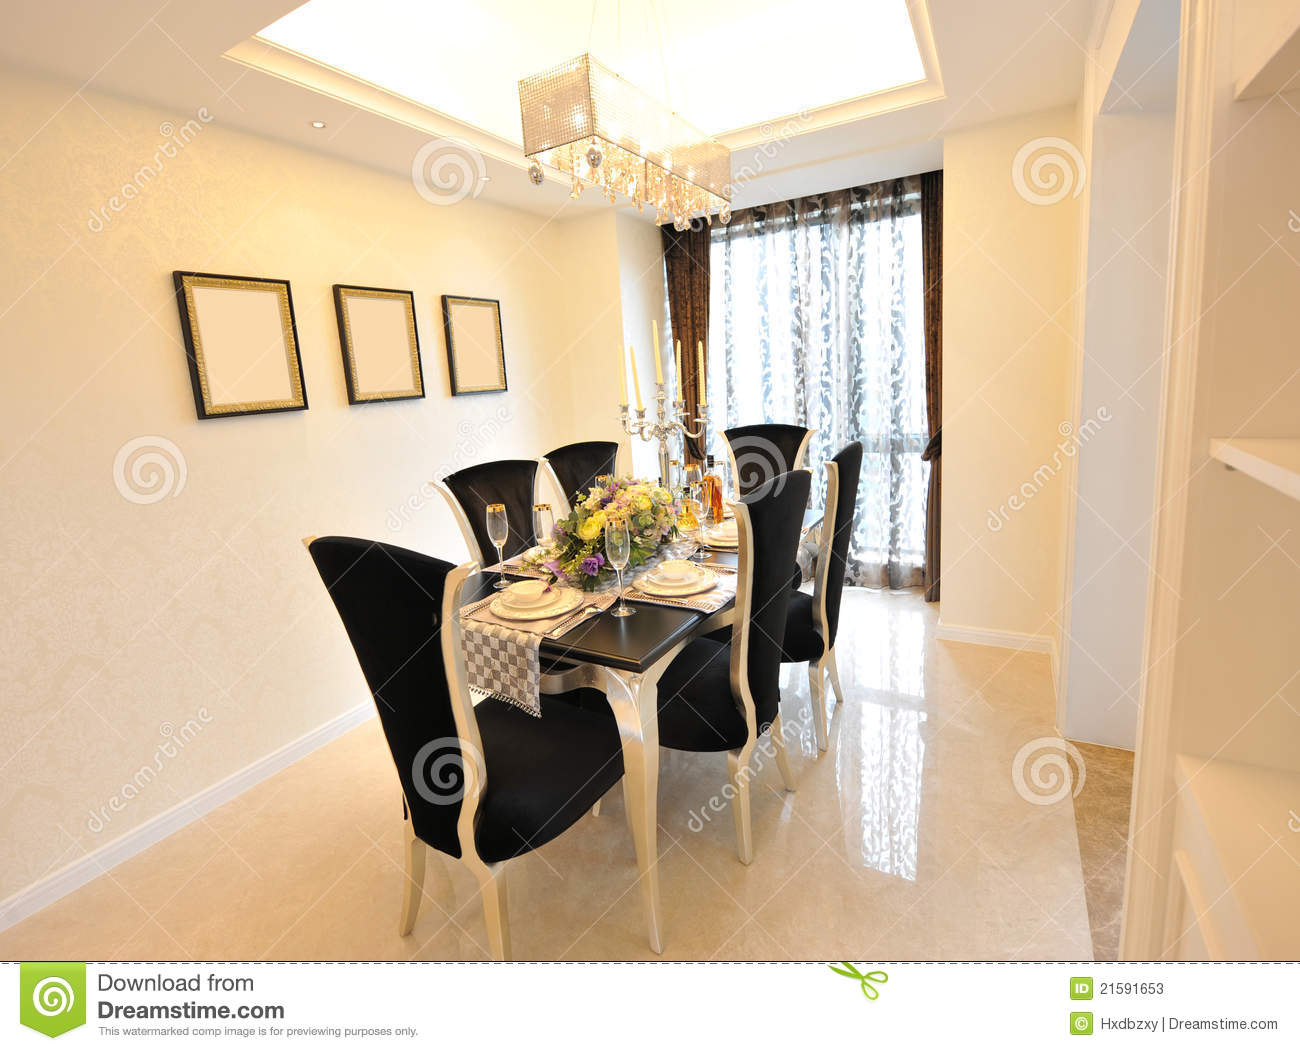 Remarkable Stock Photos: Luxury dining room 1300 x 1051 · 140 kB · jpeg